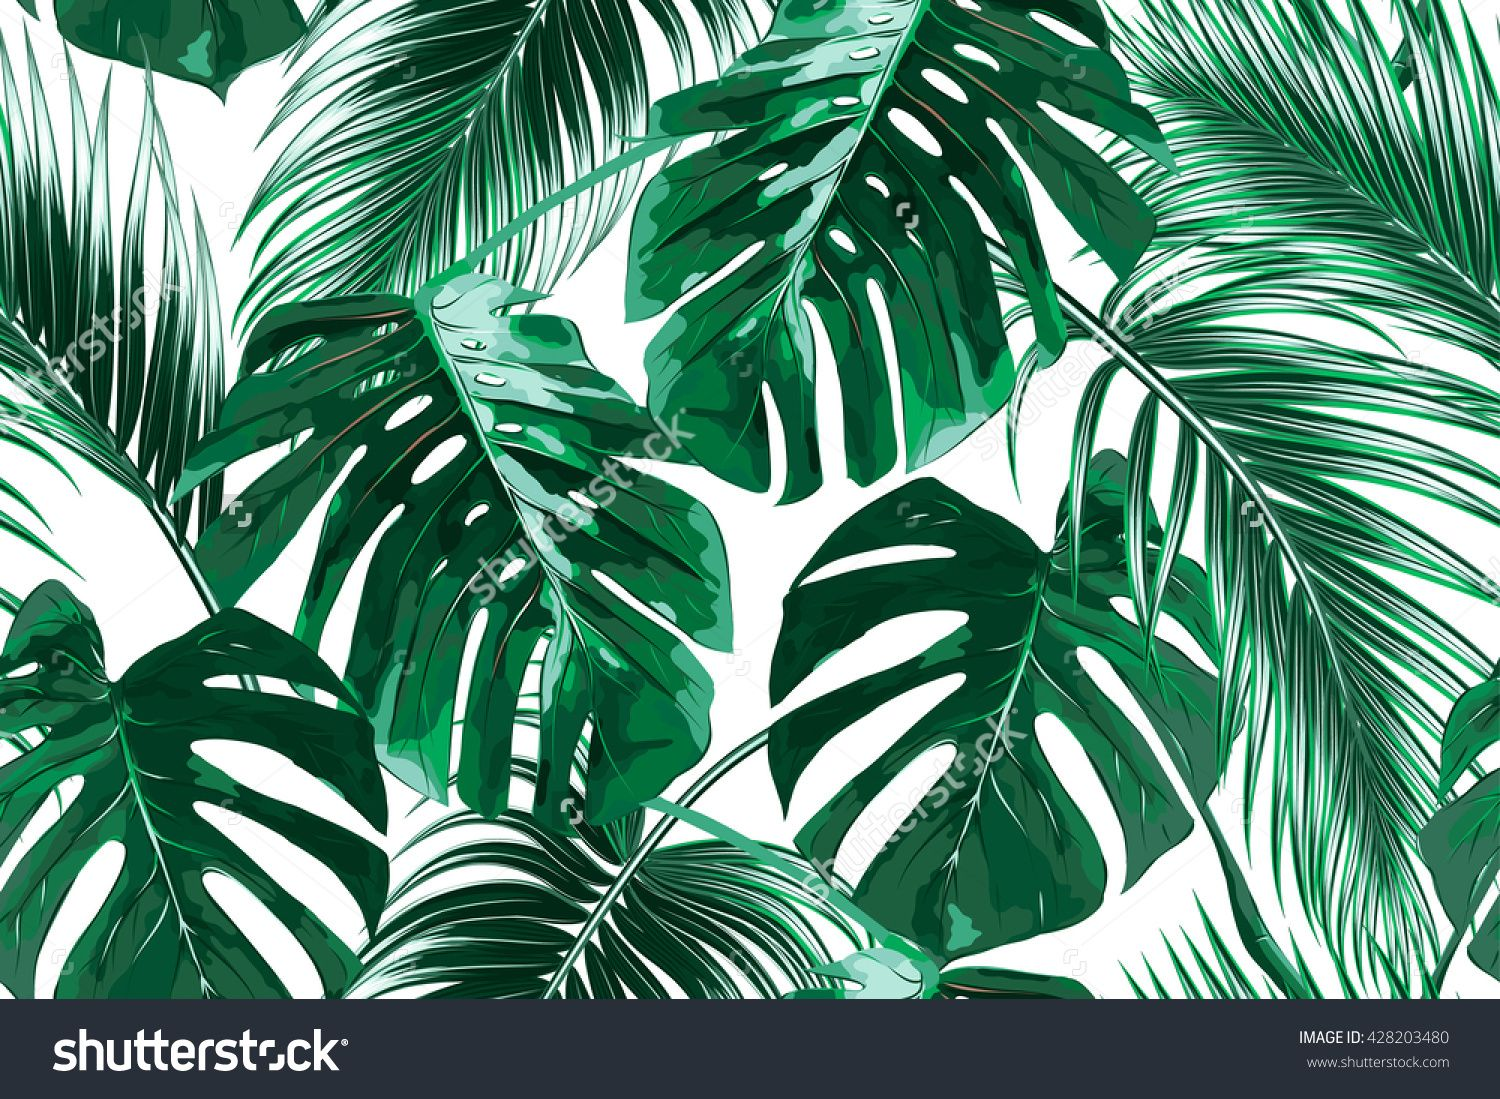 Tropical palm leaves, jungle leaves seamless vector floral